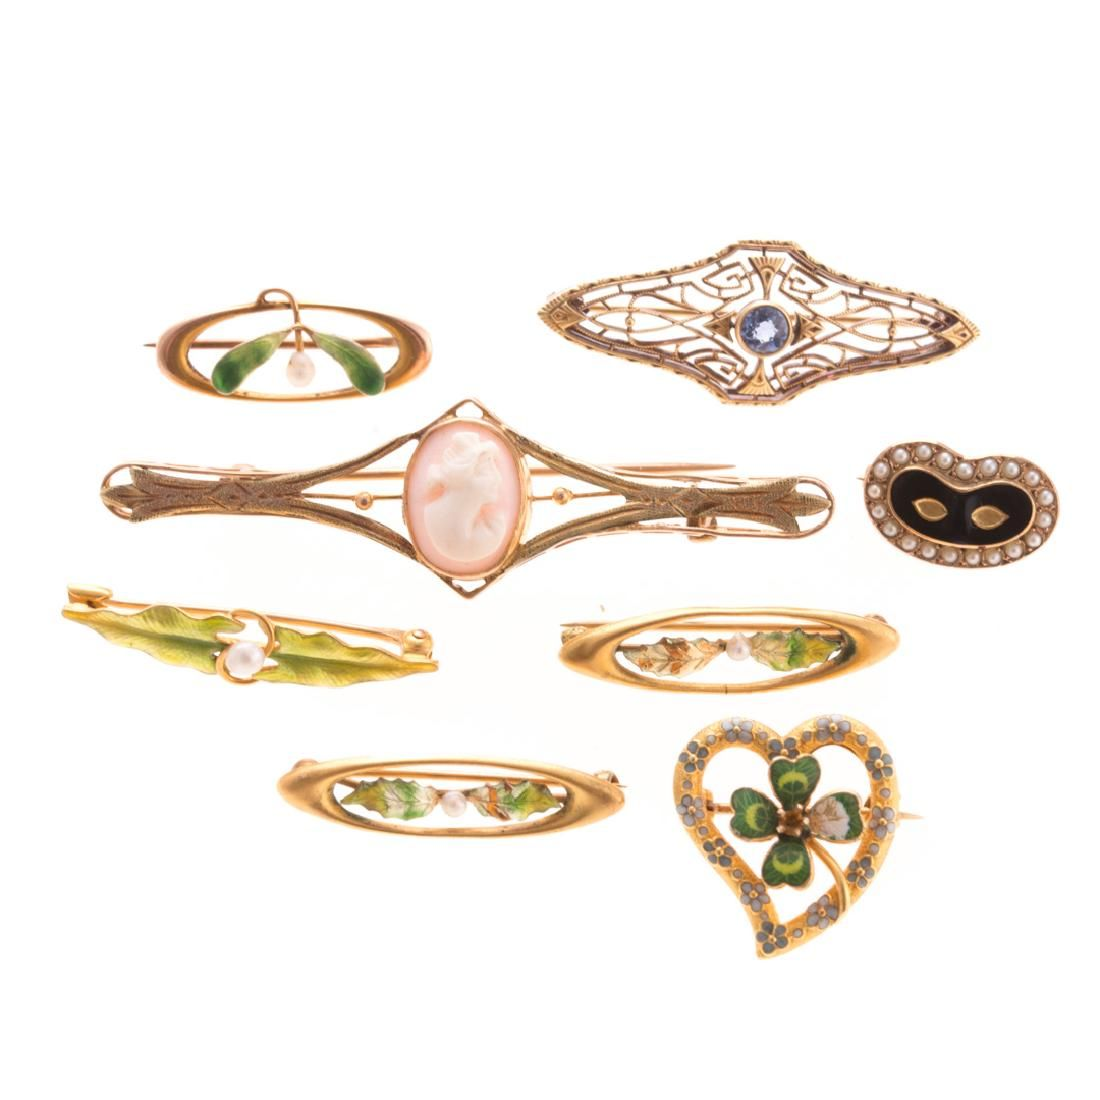 A Collection of 8 Victorian Enamel Pins